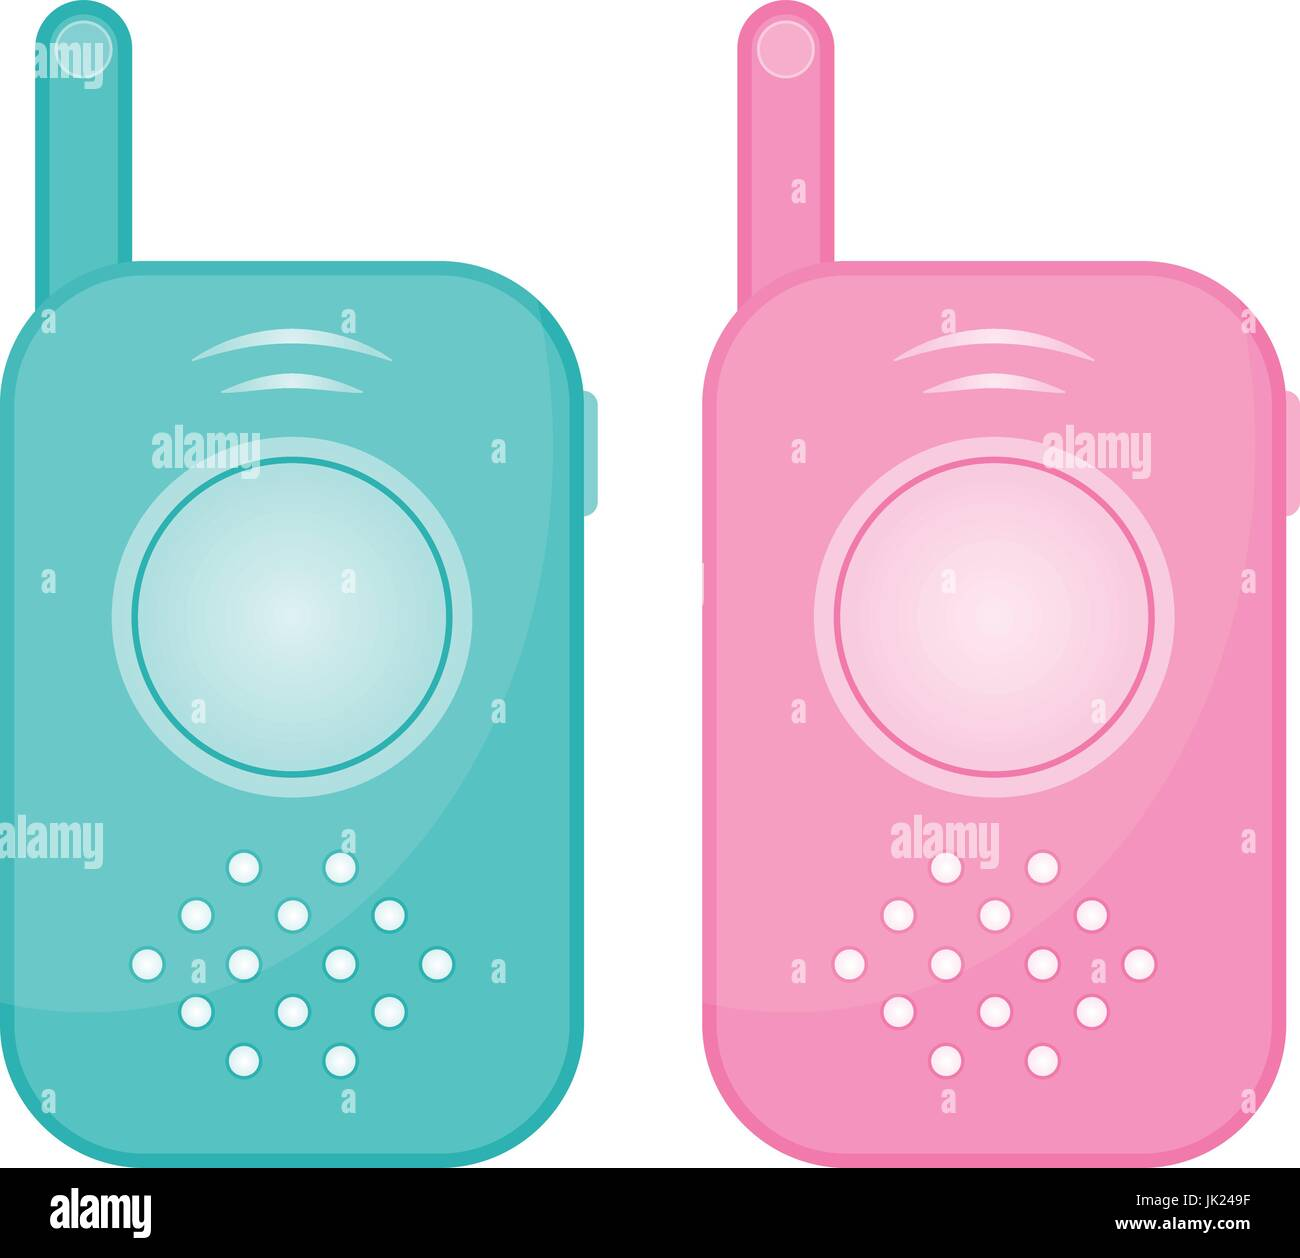 Set Of Two Baby Monitors Isolated On A White Background. Realistic Vector Illustration. - Stock Vector